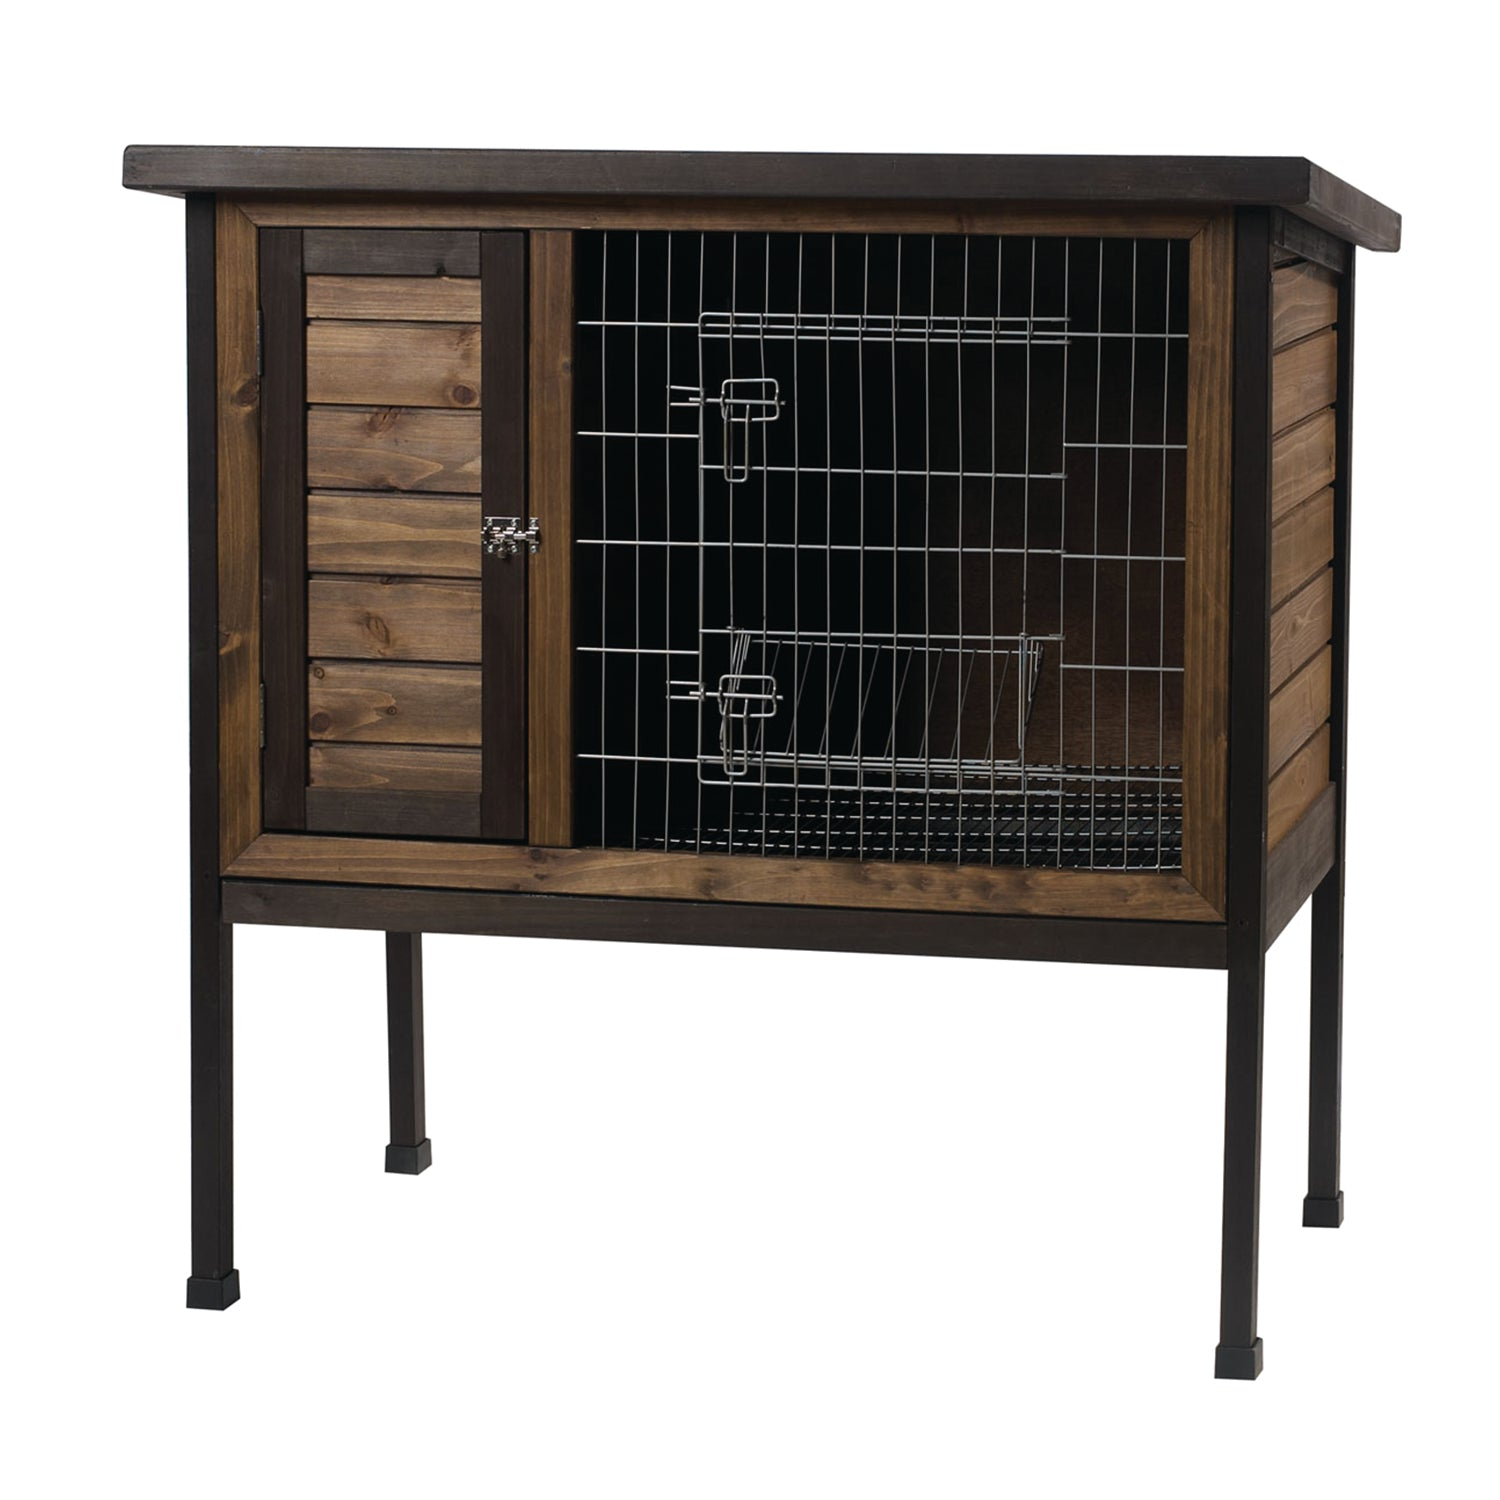 Kaytee Premium One Story Hedgehog Hutch